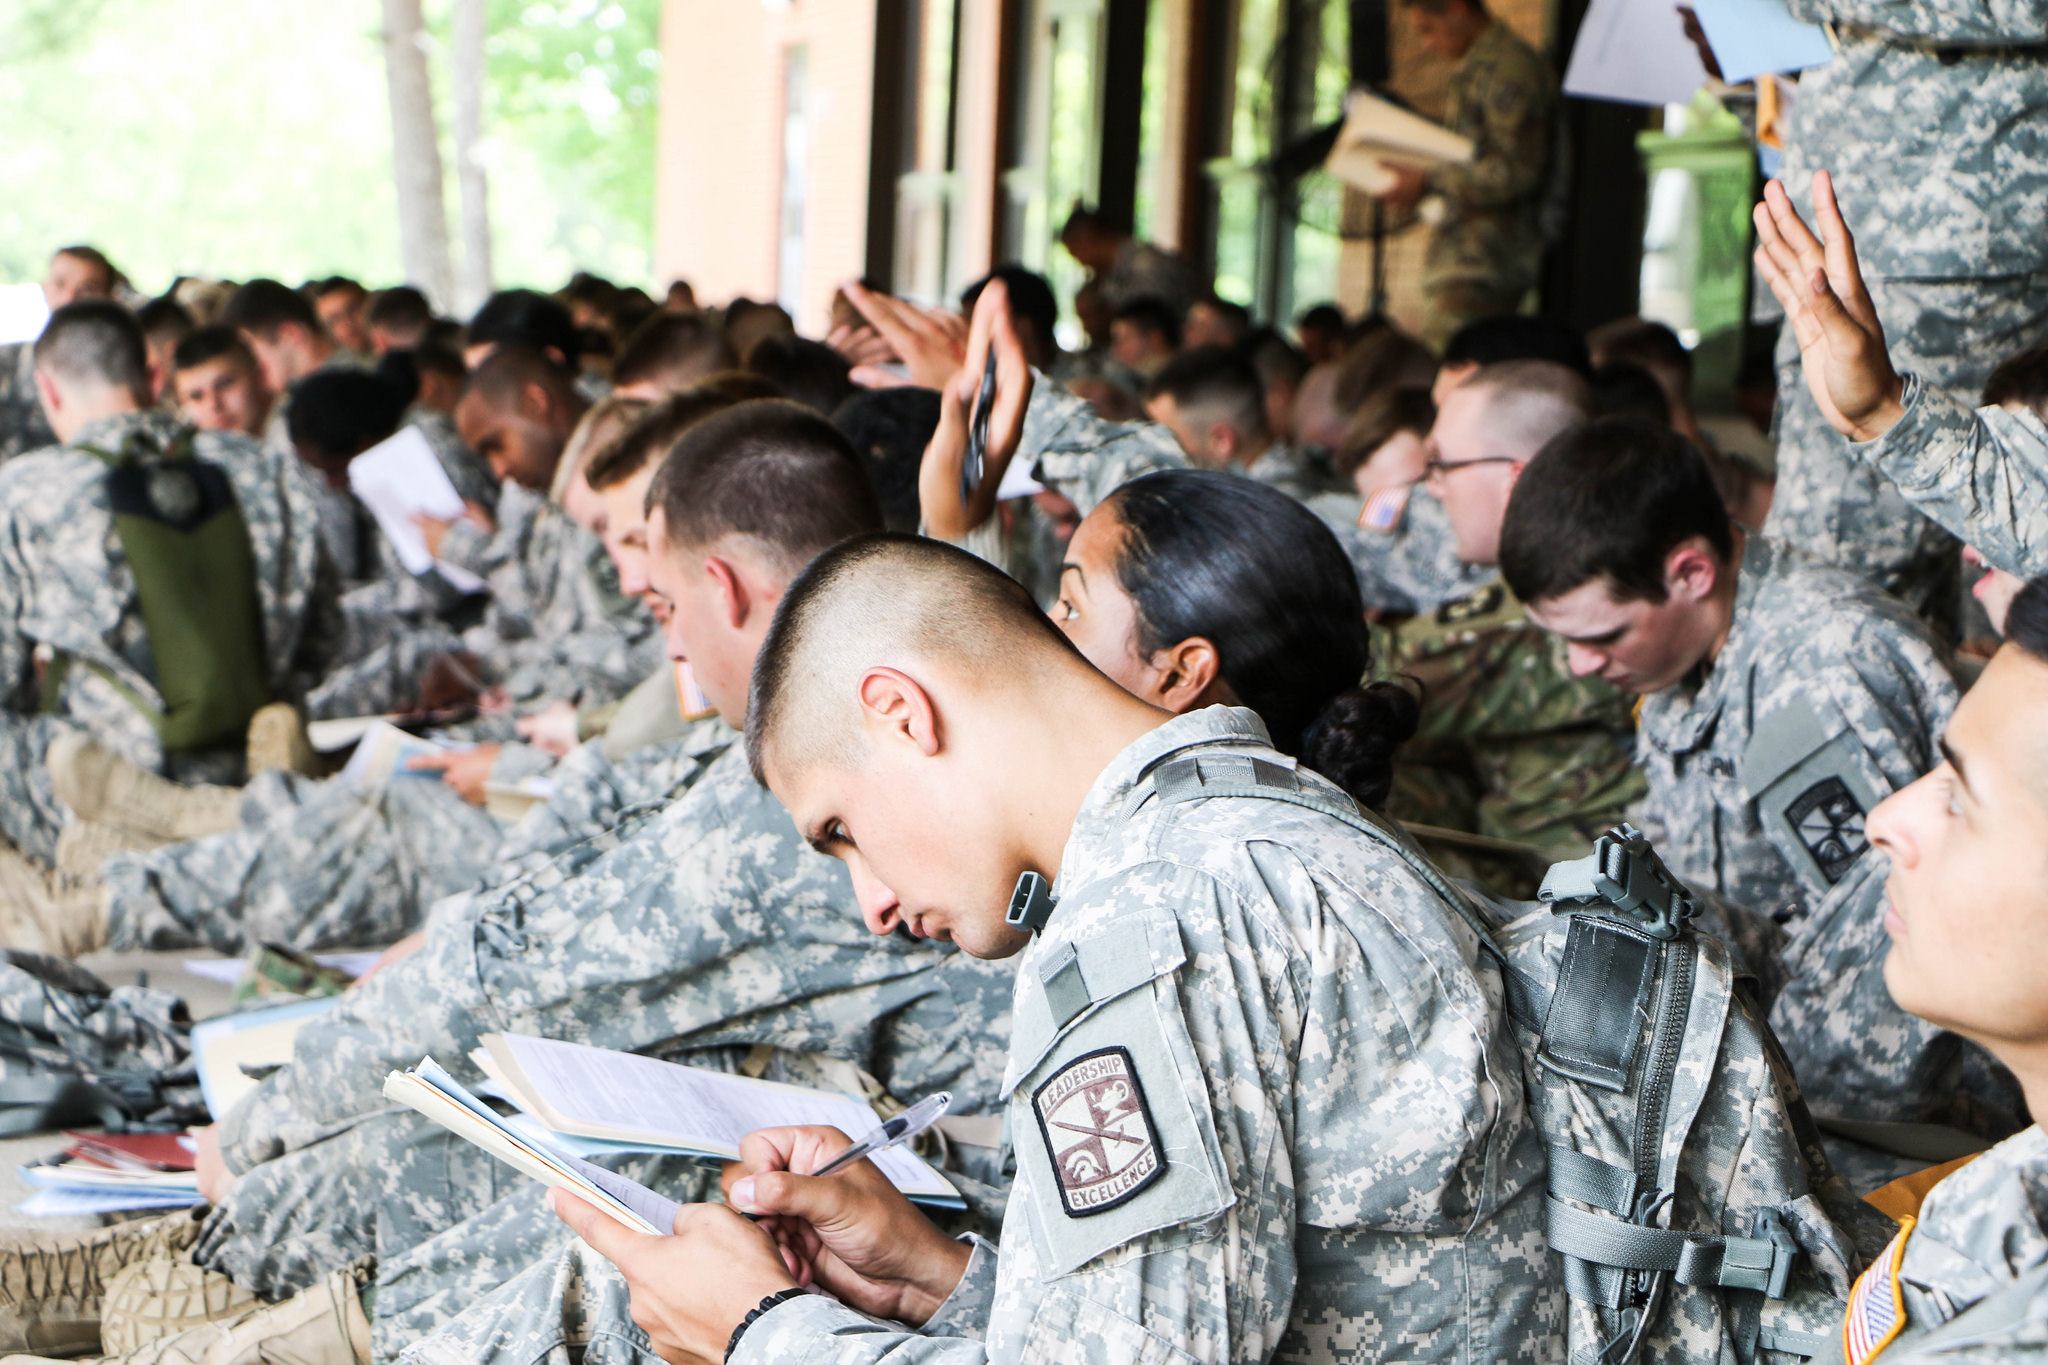 Cadets arrive at in-processing; Reflect on preparation for CST